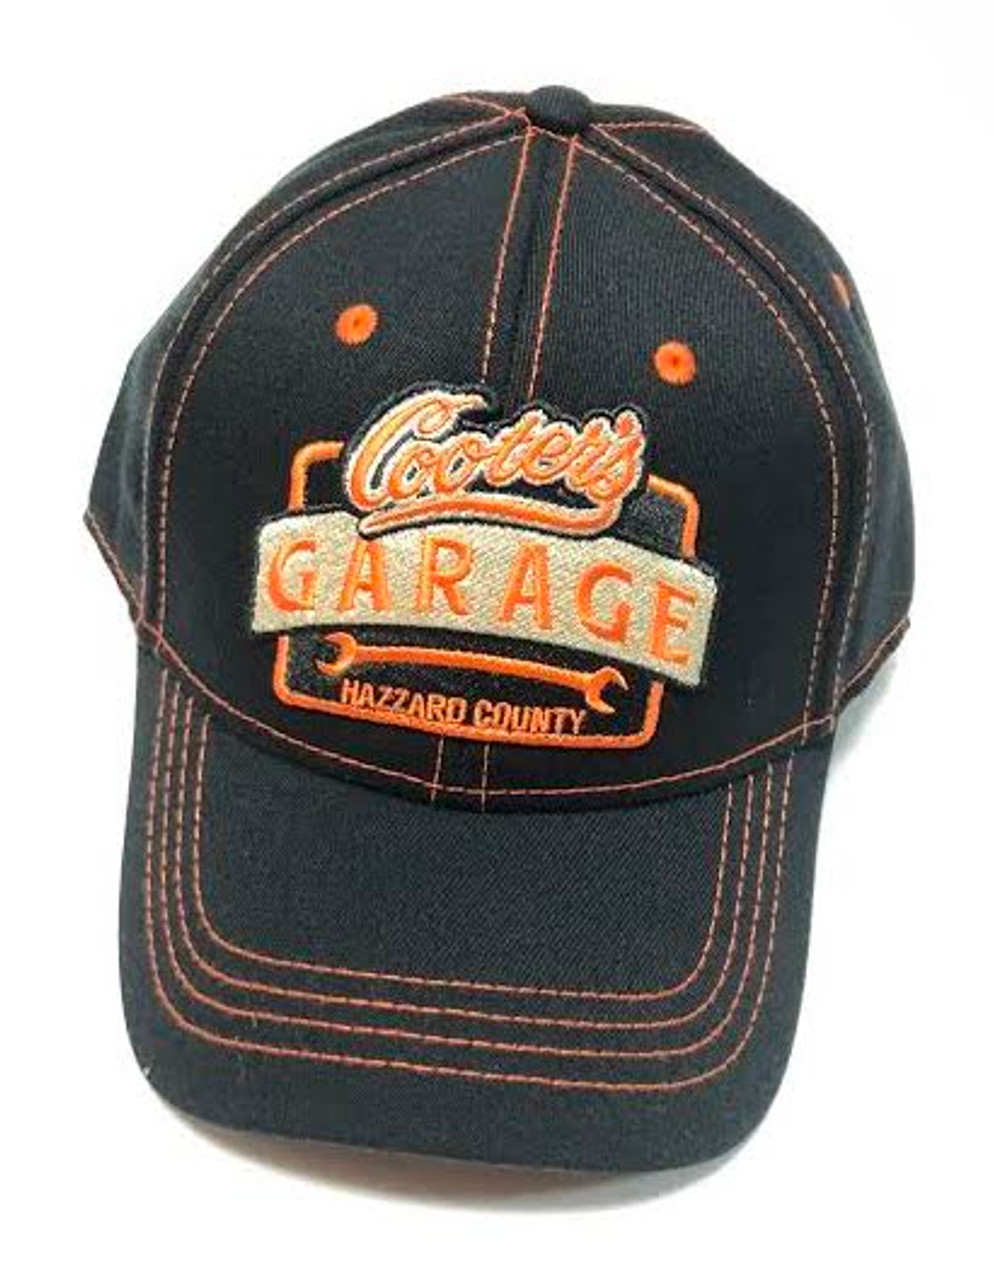 Cooter's Garage Fitted Hat (Black)